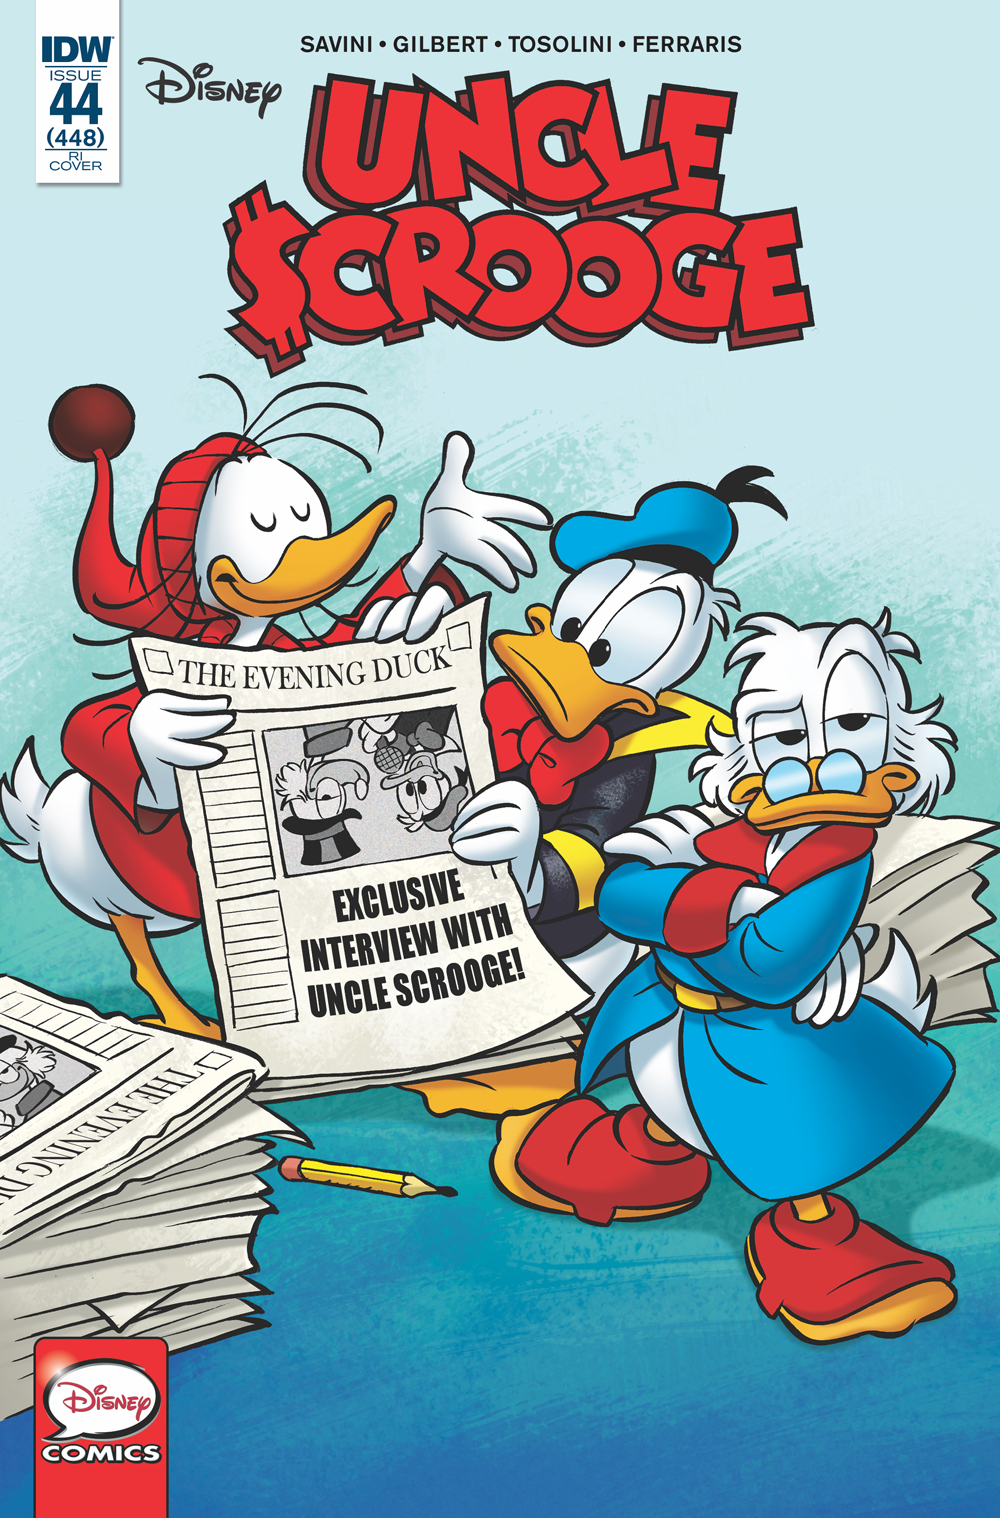 UNCLE SCROOGE #44 10 COPY INCV PERINA